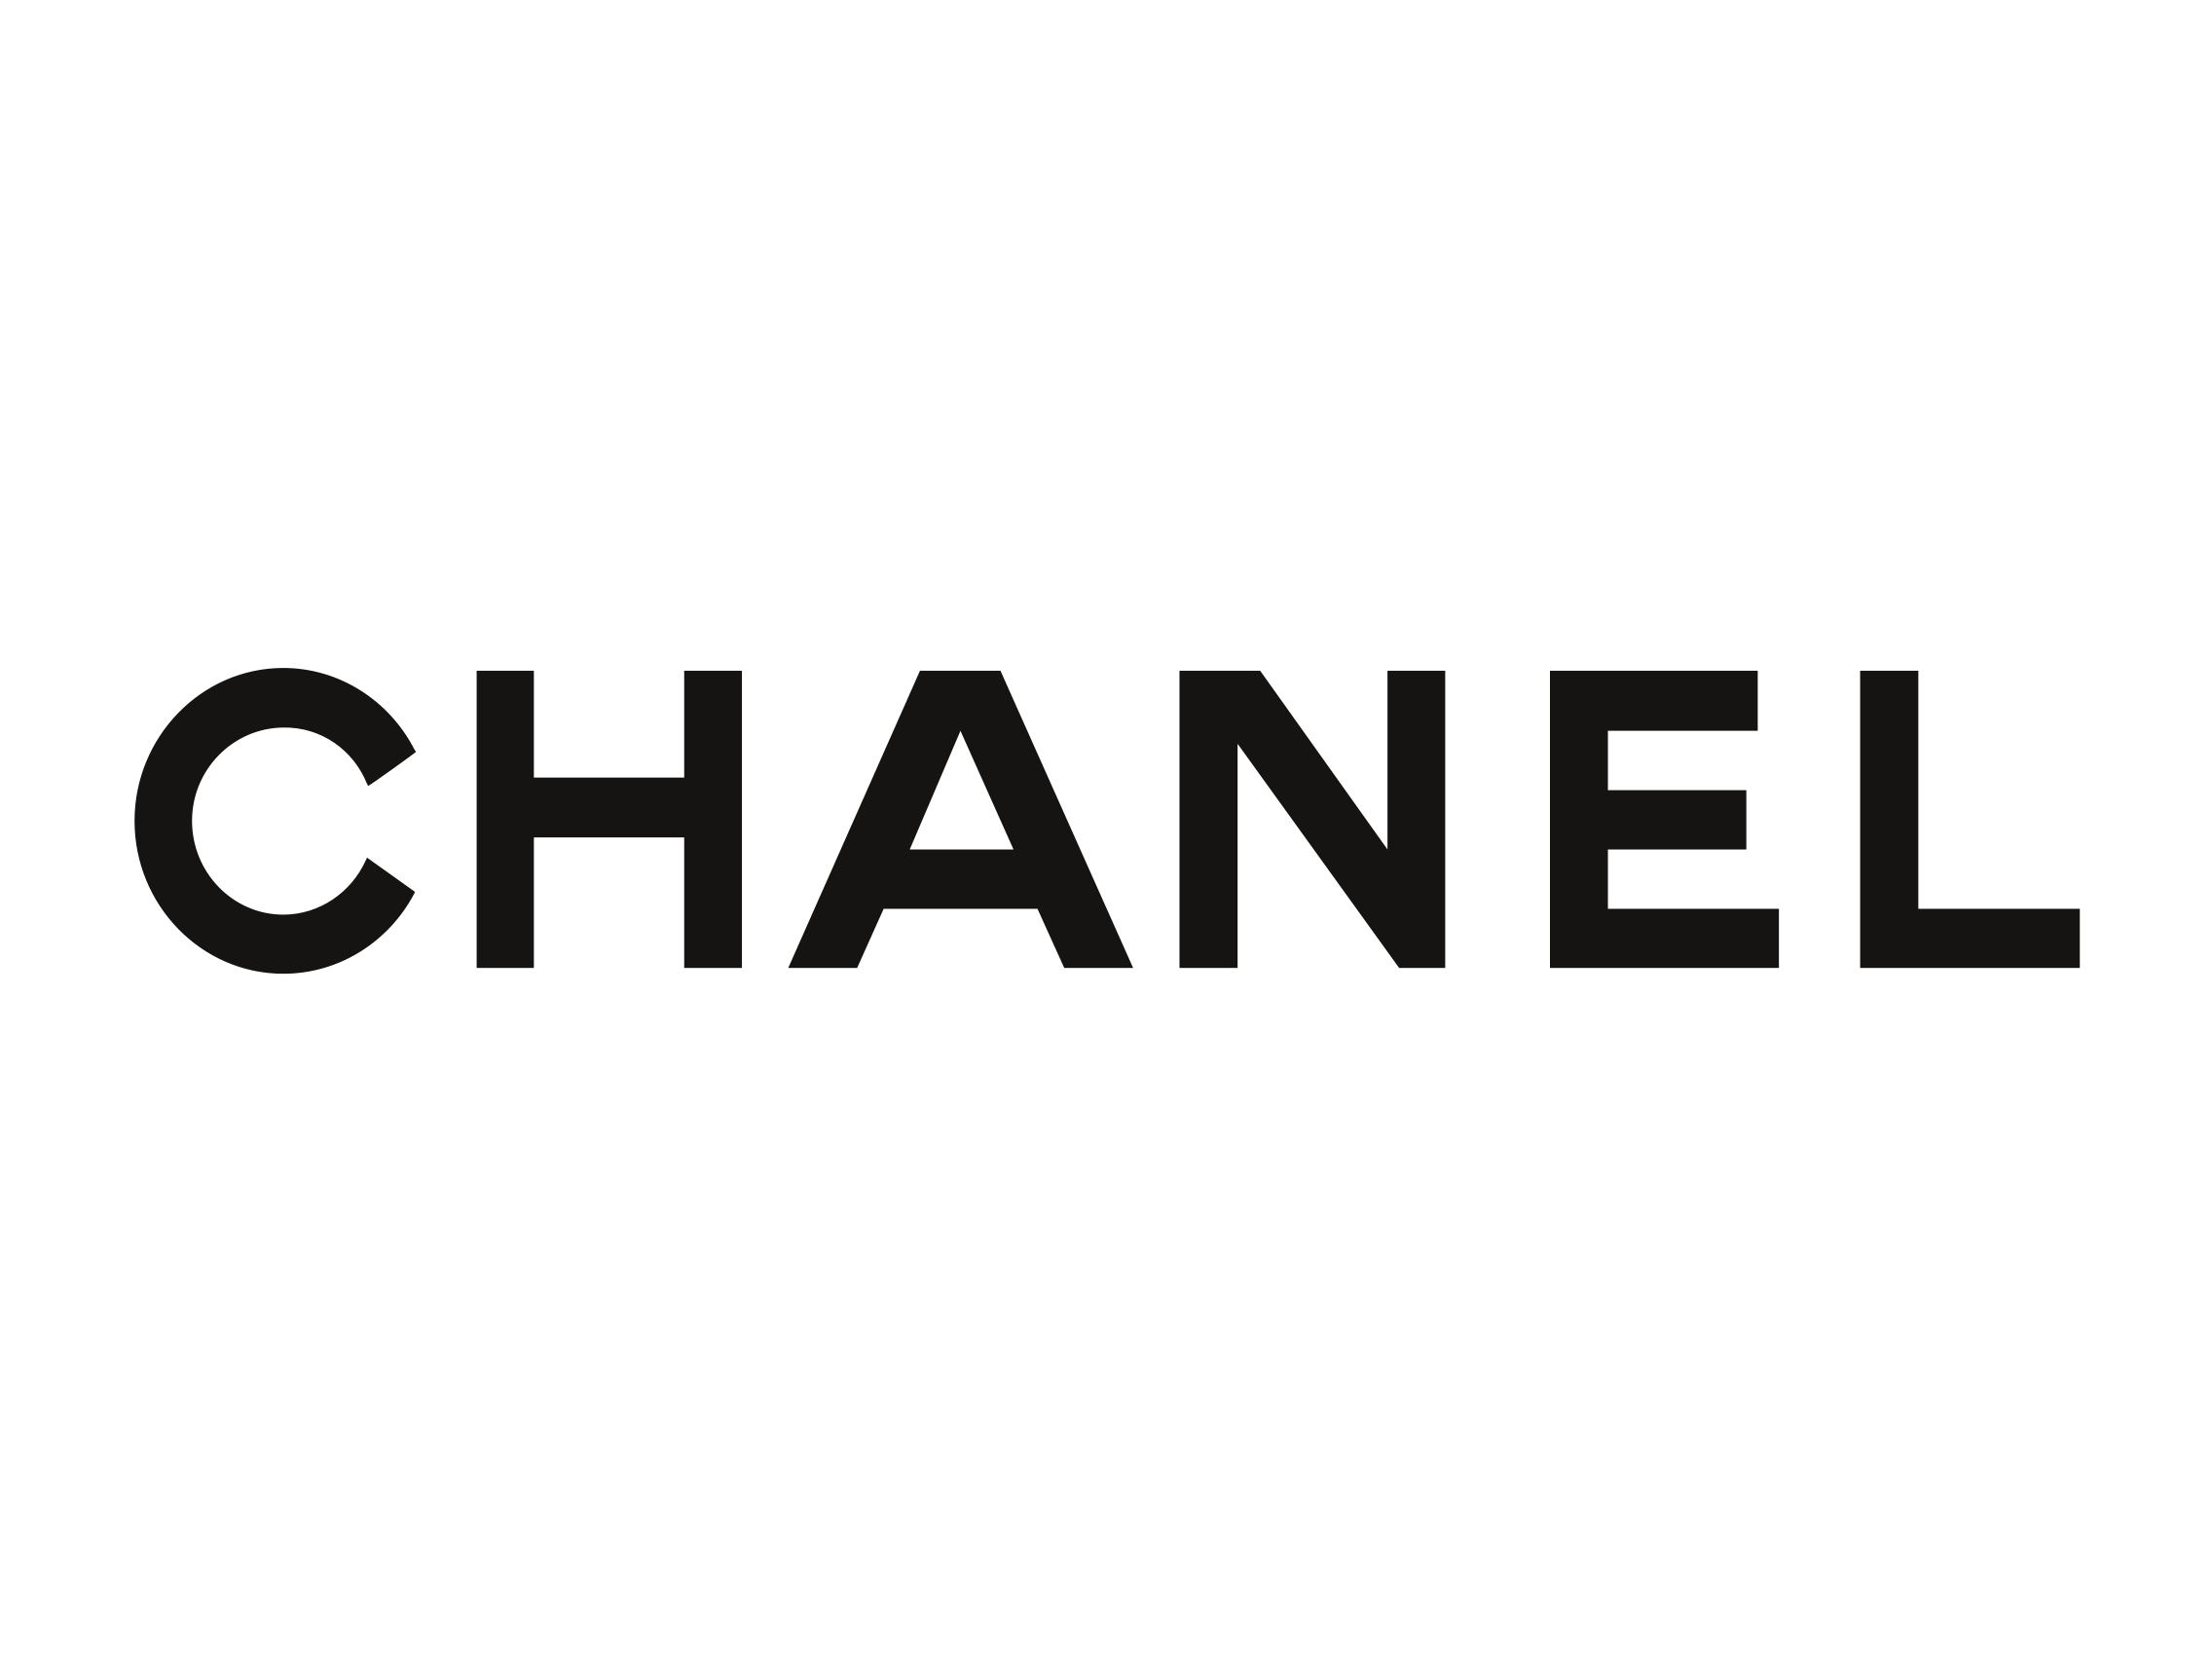 Isellsolution - Free invoice template with logo chanel online store